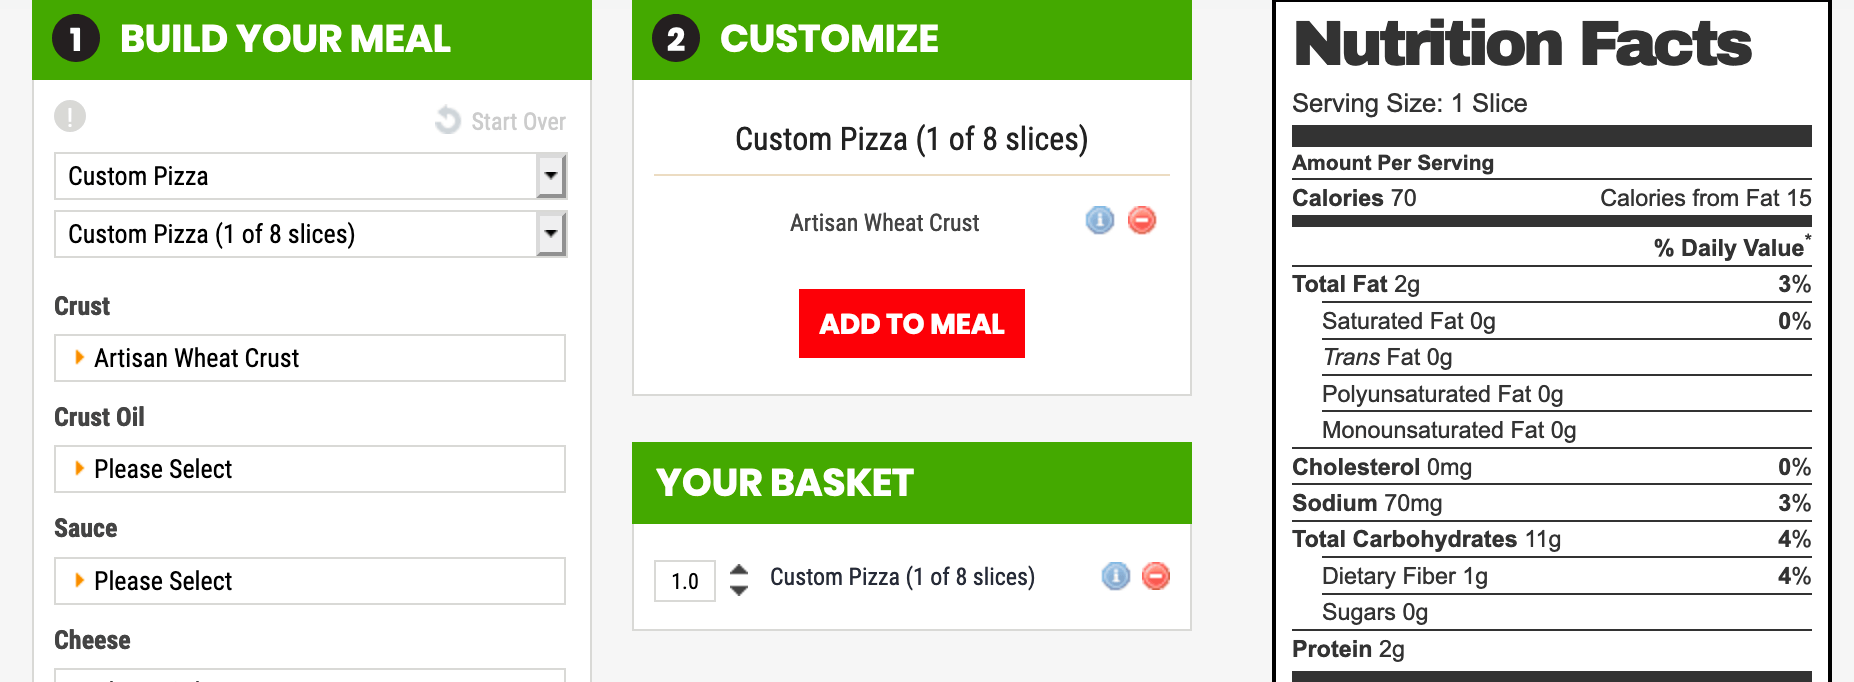 Pieology offers a nutrition calculator that allows you to compare different crusts. Here is the nutrition information for the wheat crust.